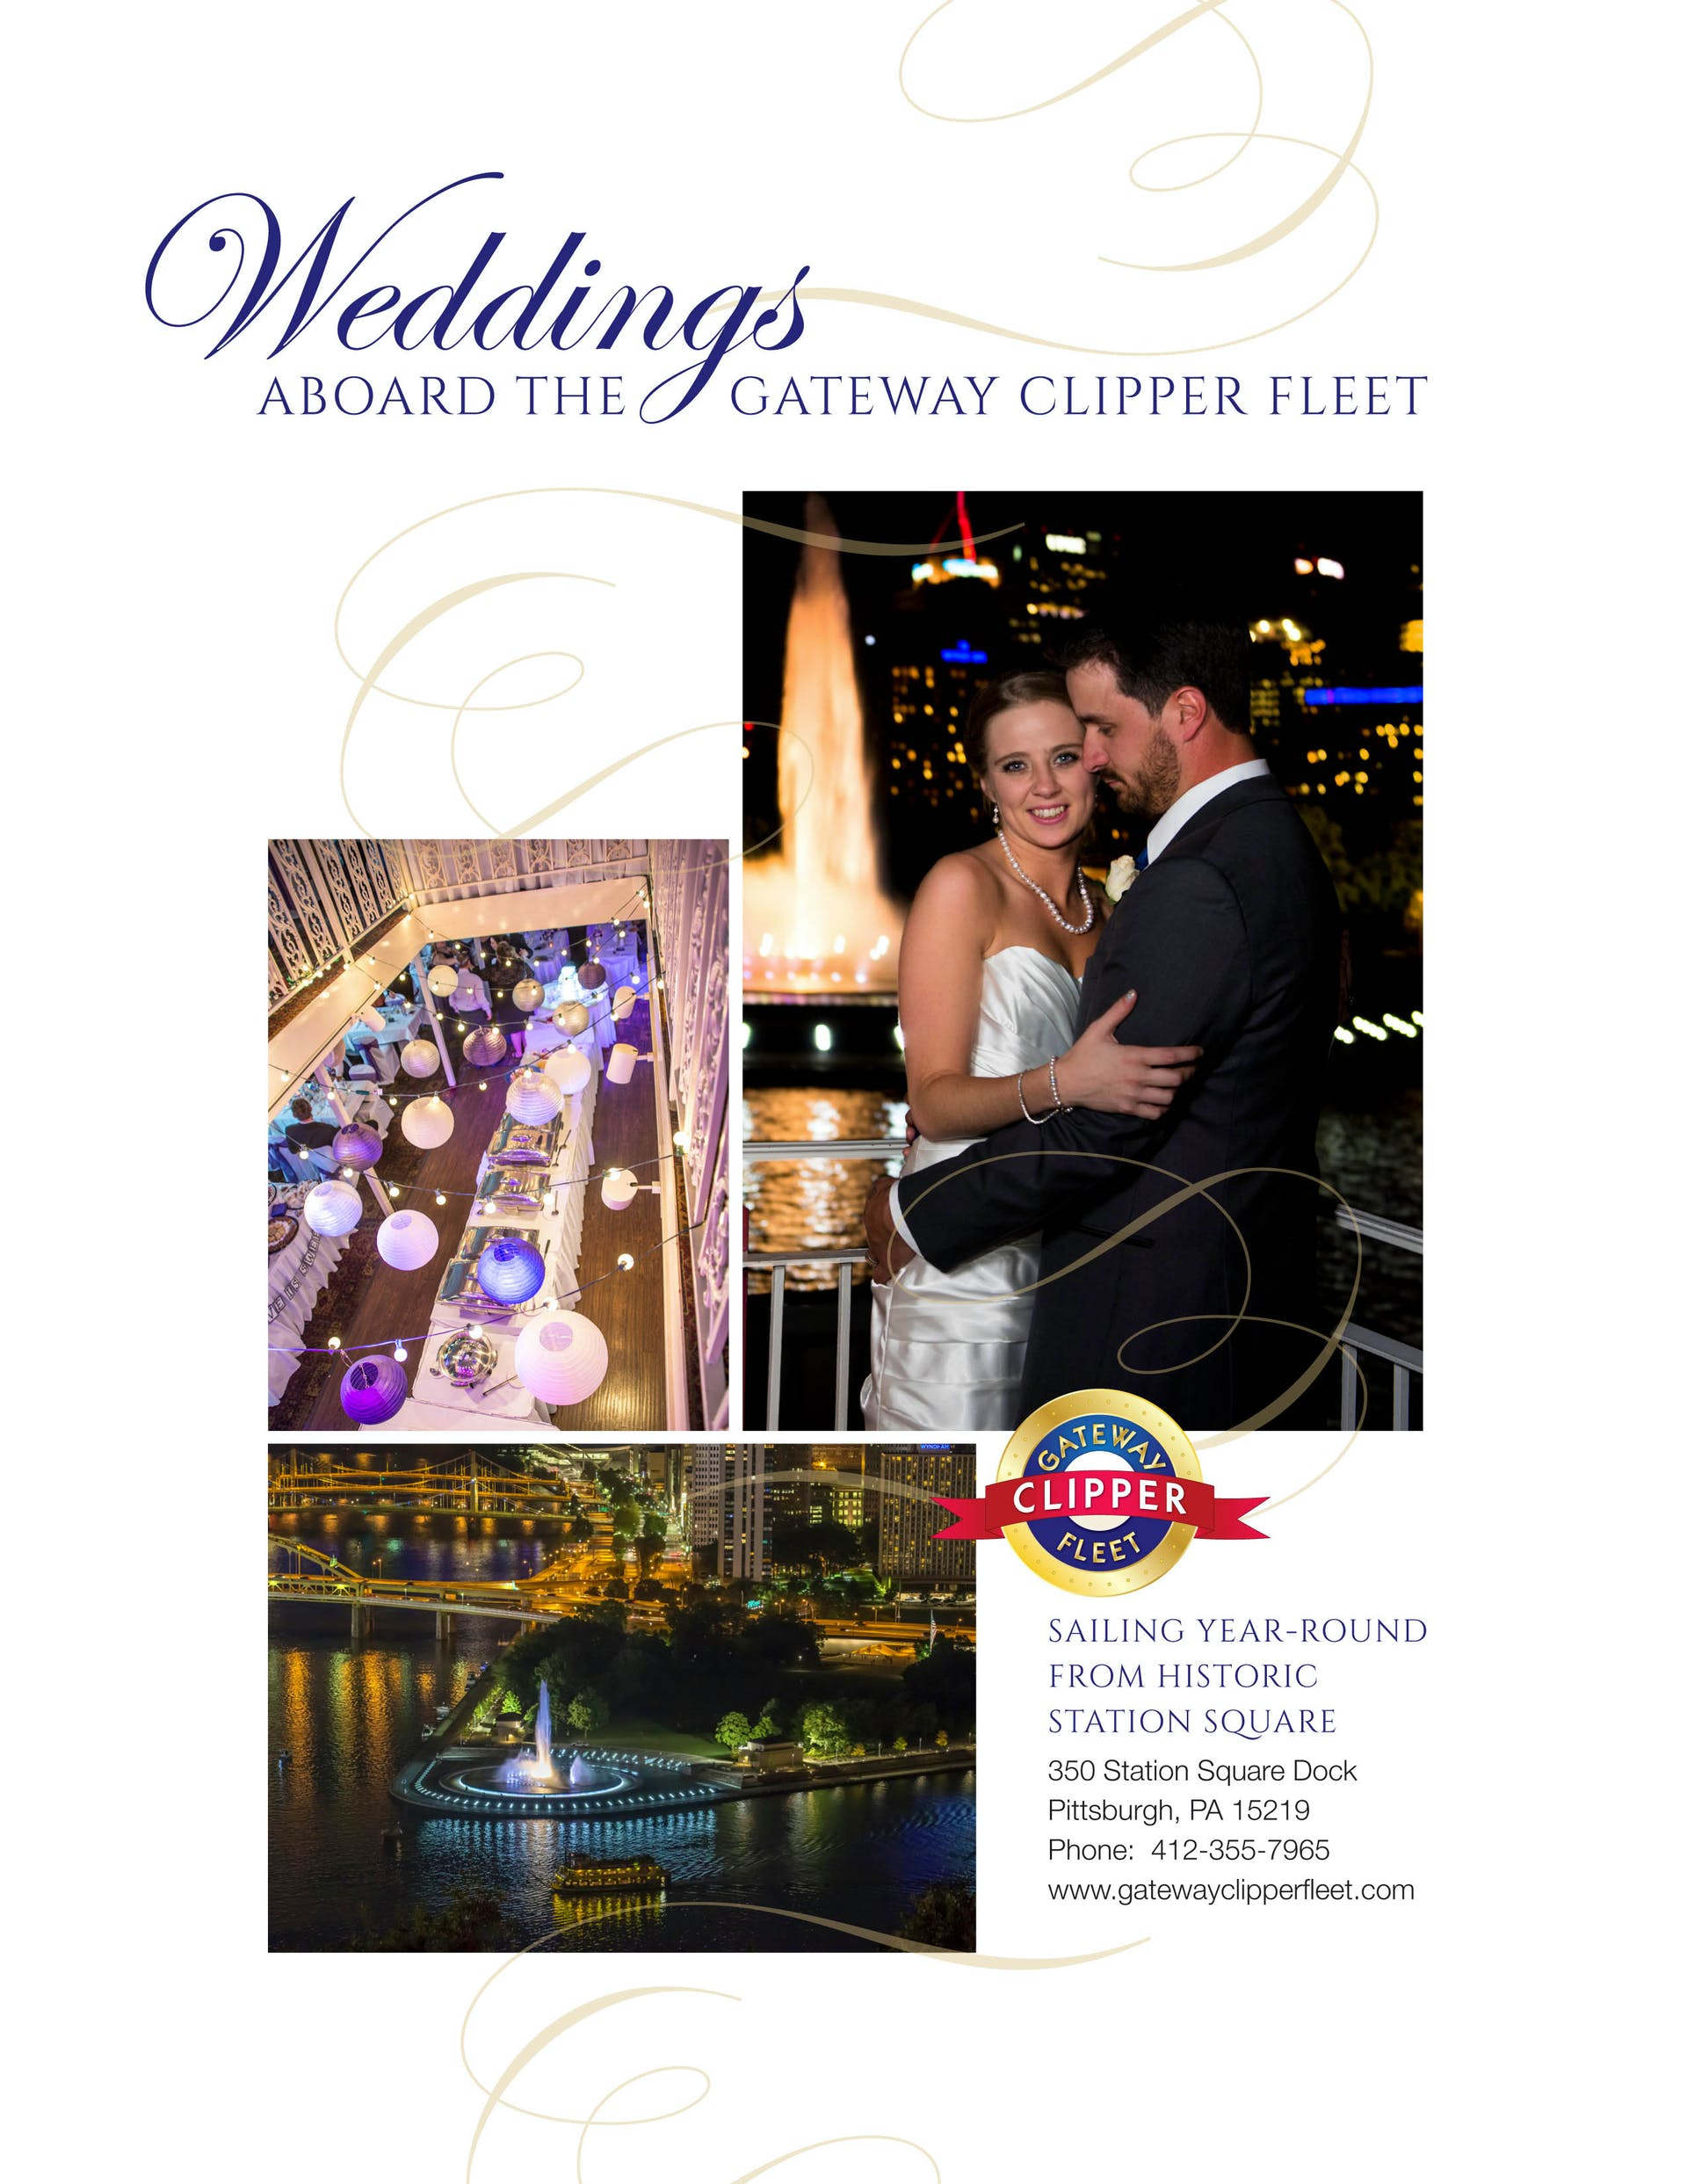 GATEWAY CLIPPER FLEET WEDDINGS button